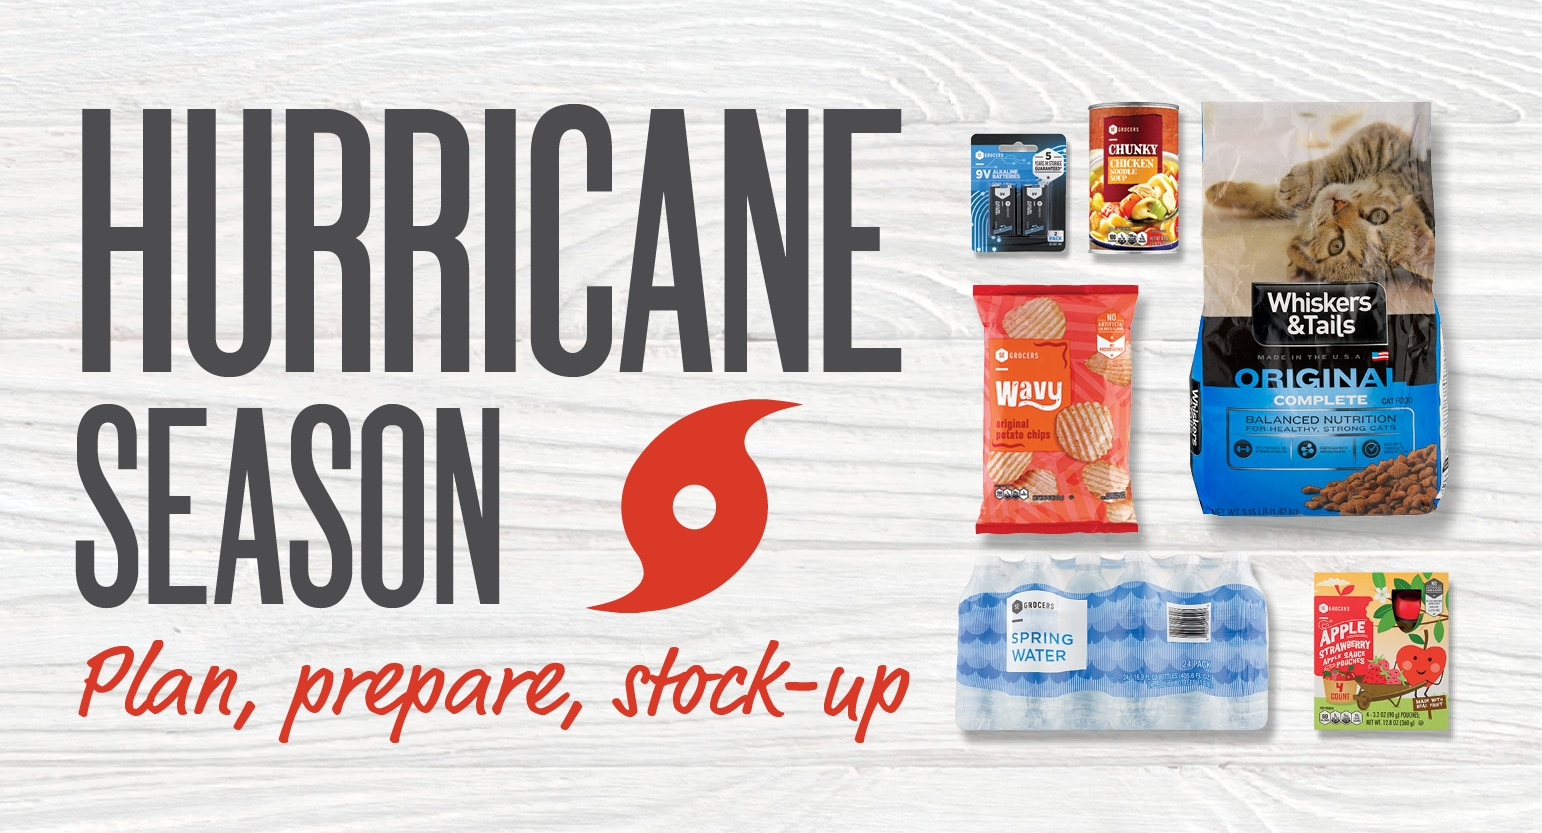 Hurricane season plan prepare stock-up